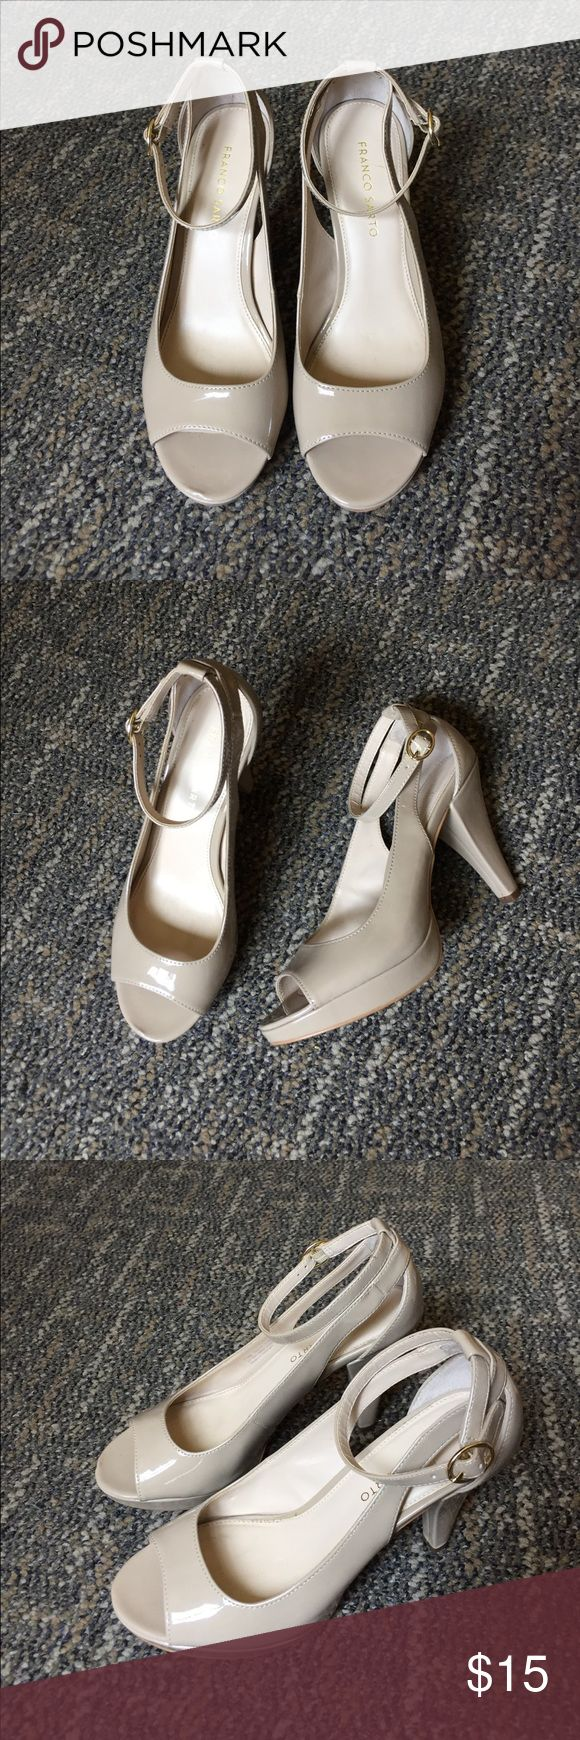 Franco Sarto beige high heels Neutral beige color. 4 inch heel with ankle strap. Worn once. Franco Sarto Shoes Heels